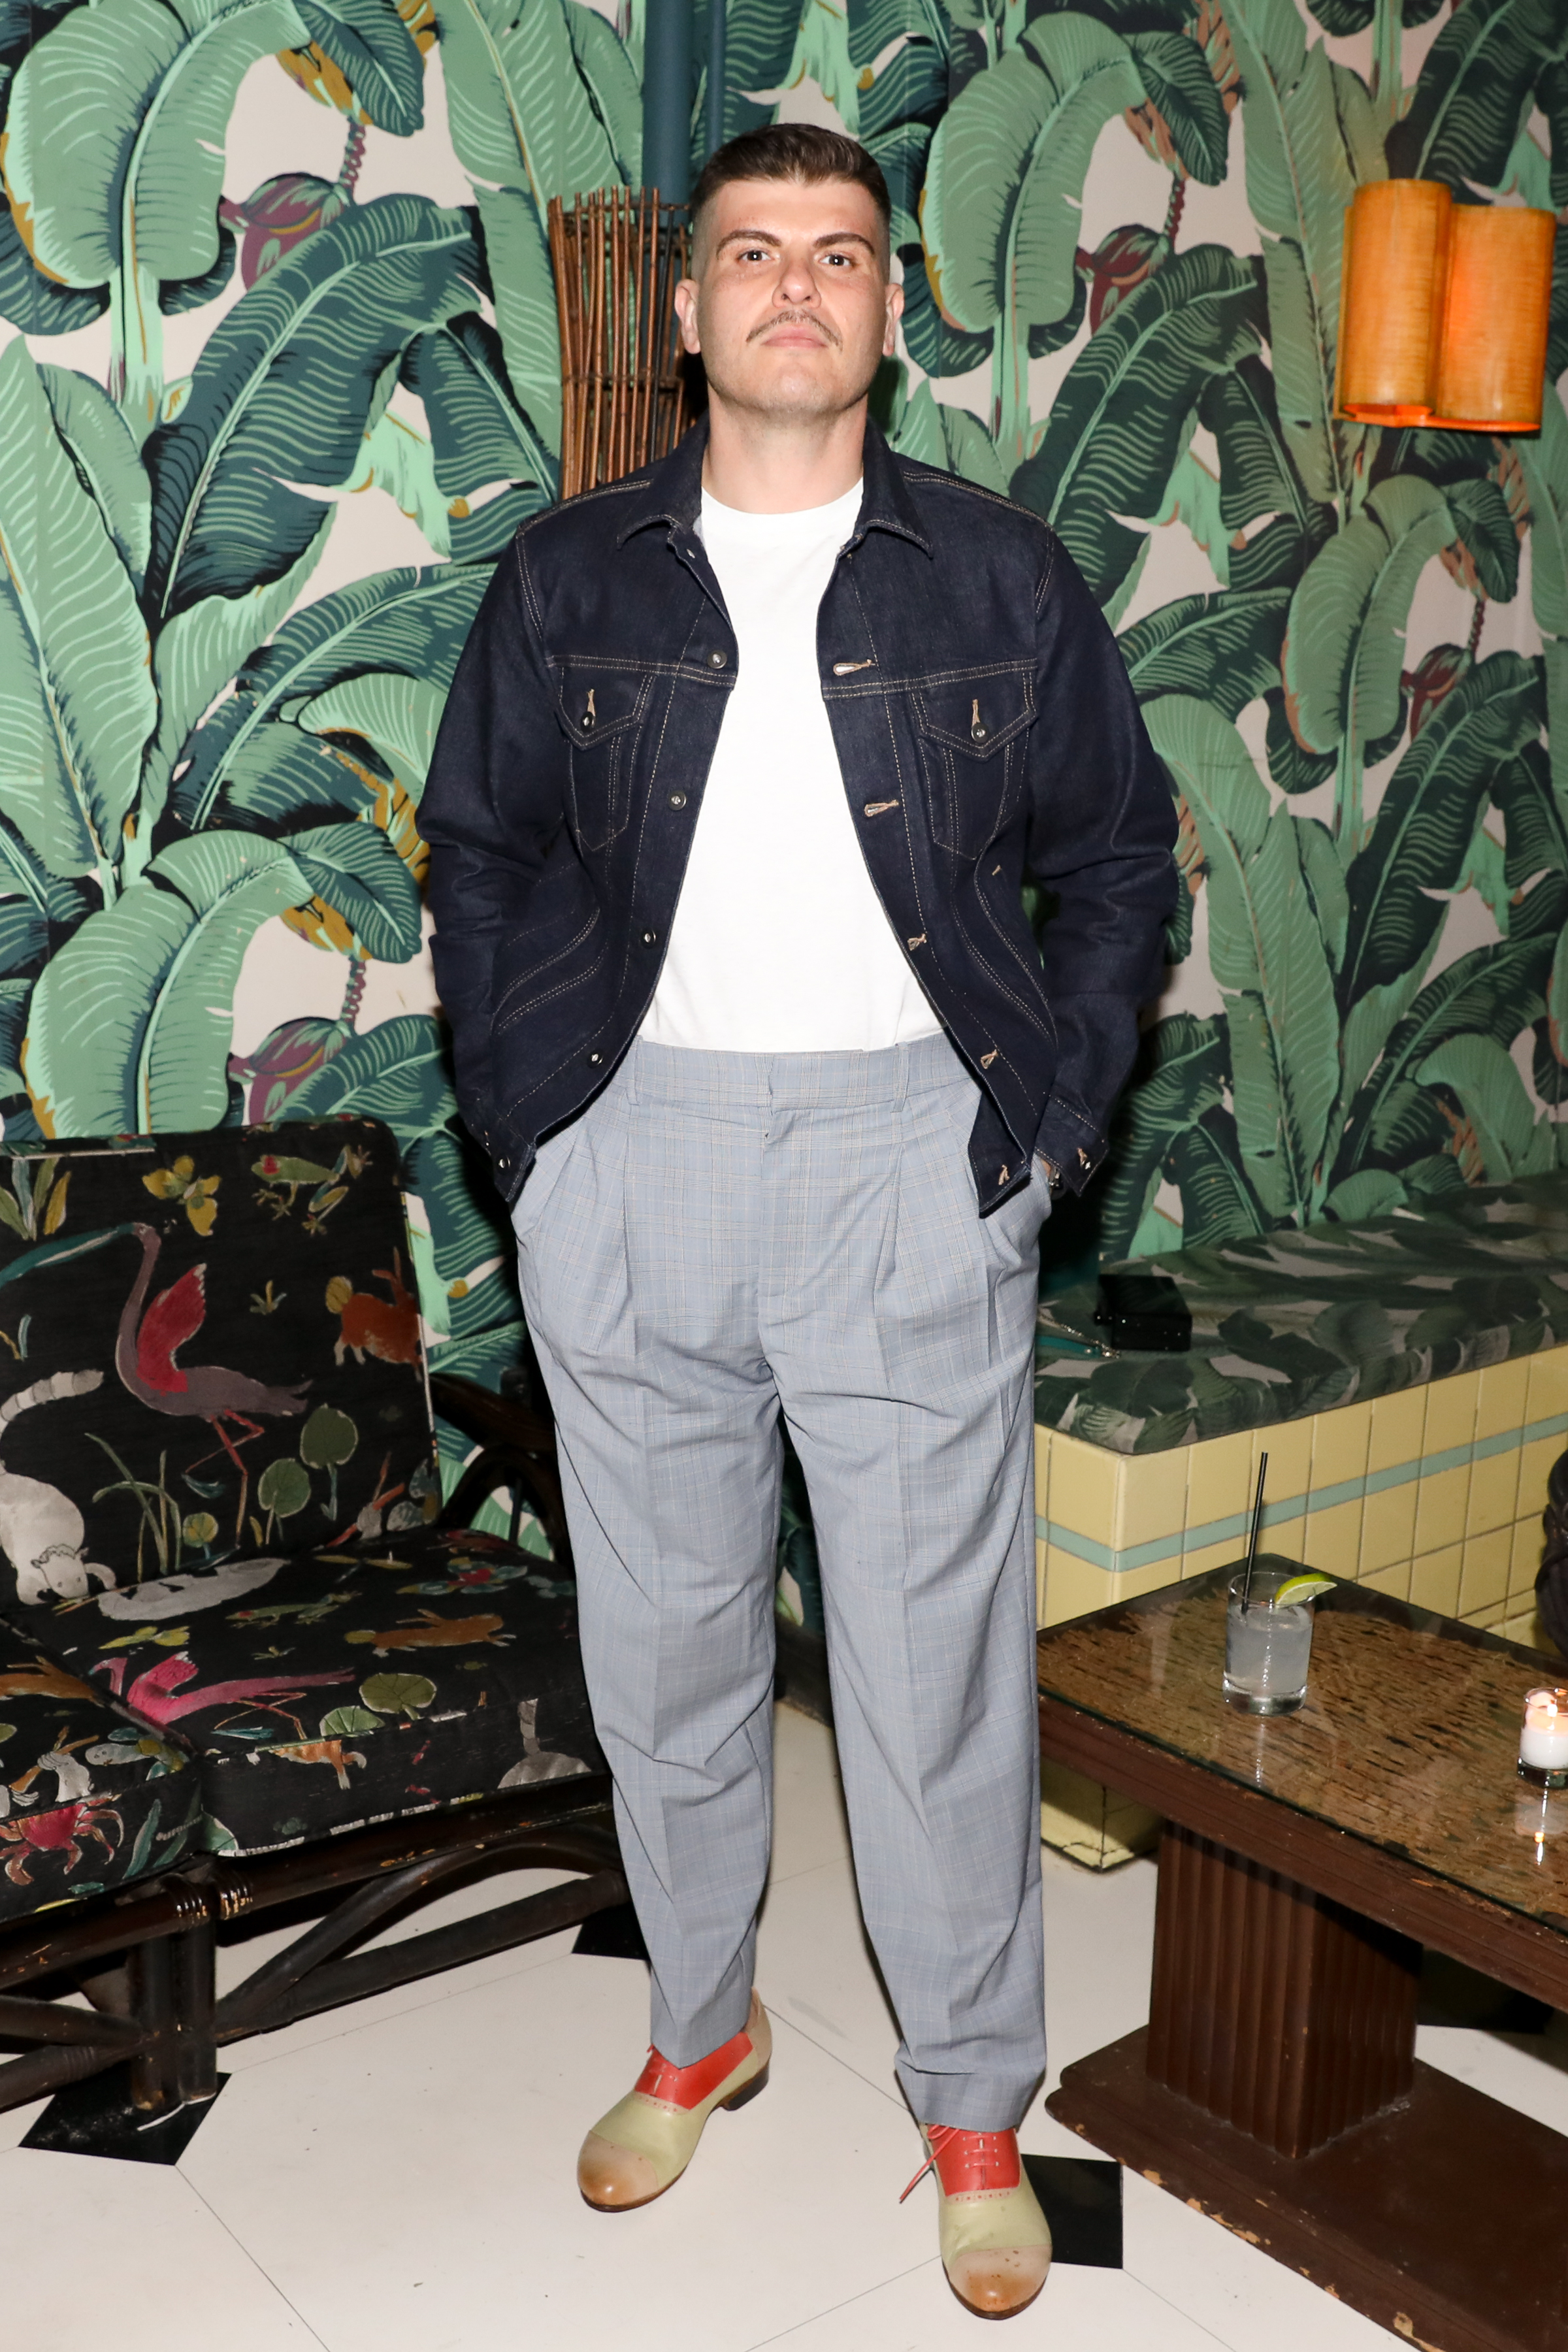 Eli Mizrahi attends The Opening of The Dr. Barbara Sturm Zero Bond Boutique & Spa on Thursday, May 2, 2019. Photographed by Neil Rasmus/BFA.